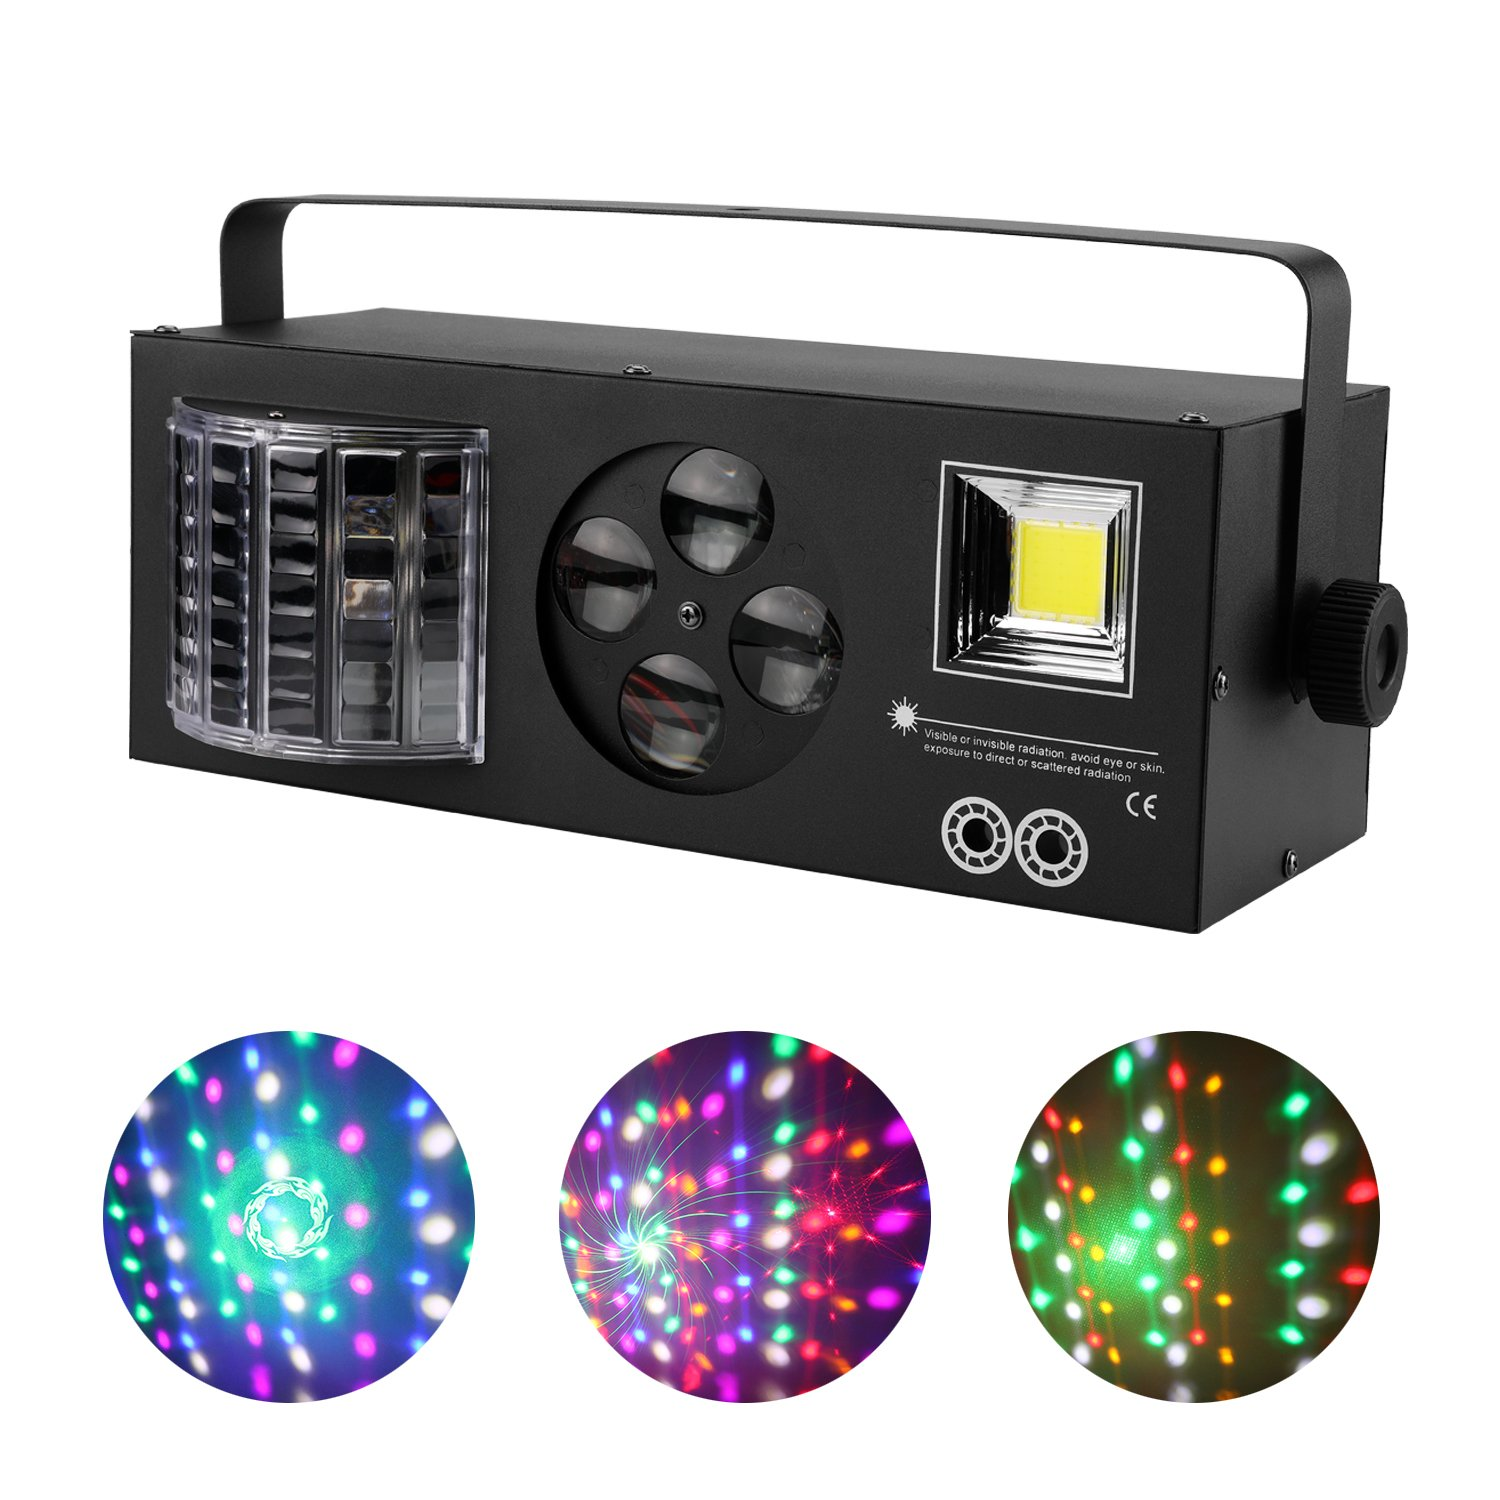 4 In 1 Mix Effect Red Green Gobos Mix Strobe Par Lamp RGBWY Beam LED DMX Rotate Light DJ Party Club Show Holiday Stage Lighting HONG YAO ZHI GUANG